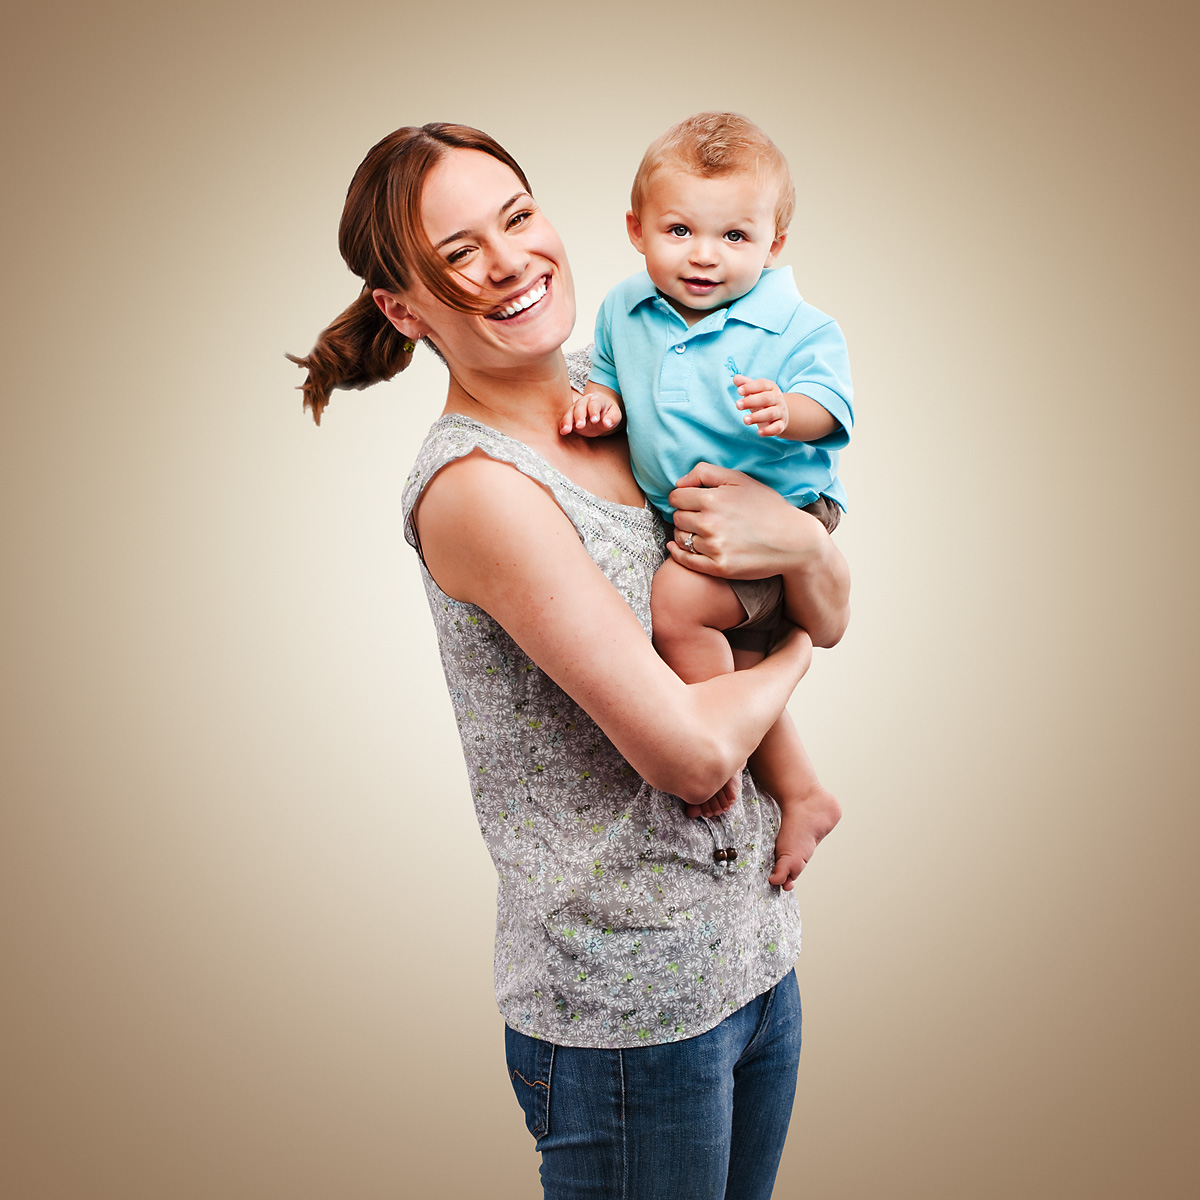 john_muir_health-super_moms-jennifer-stephen-austin-welch-director-photographer